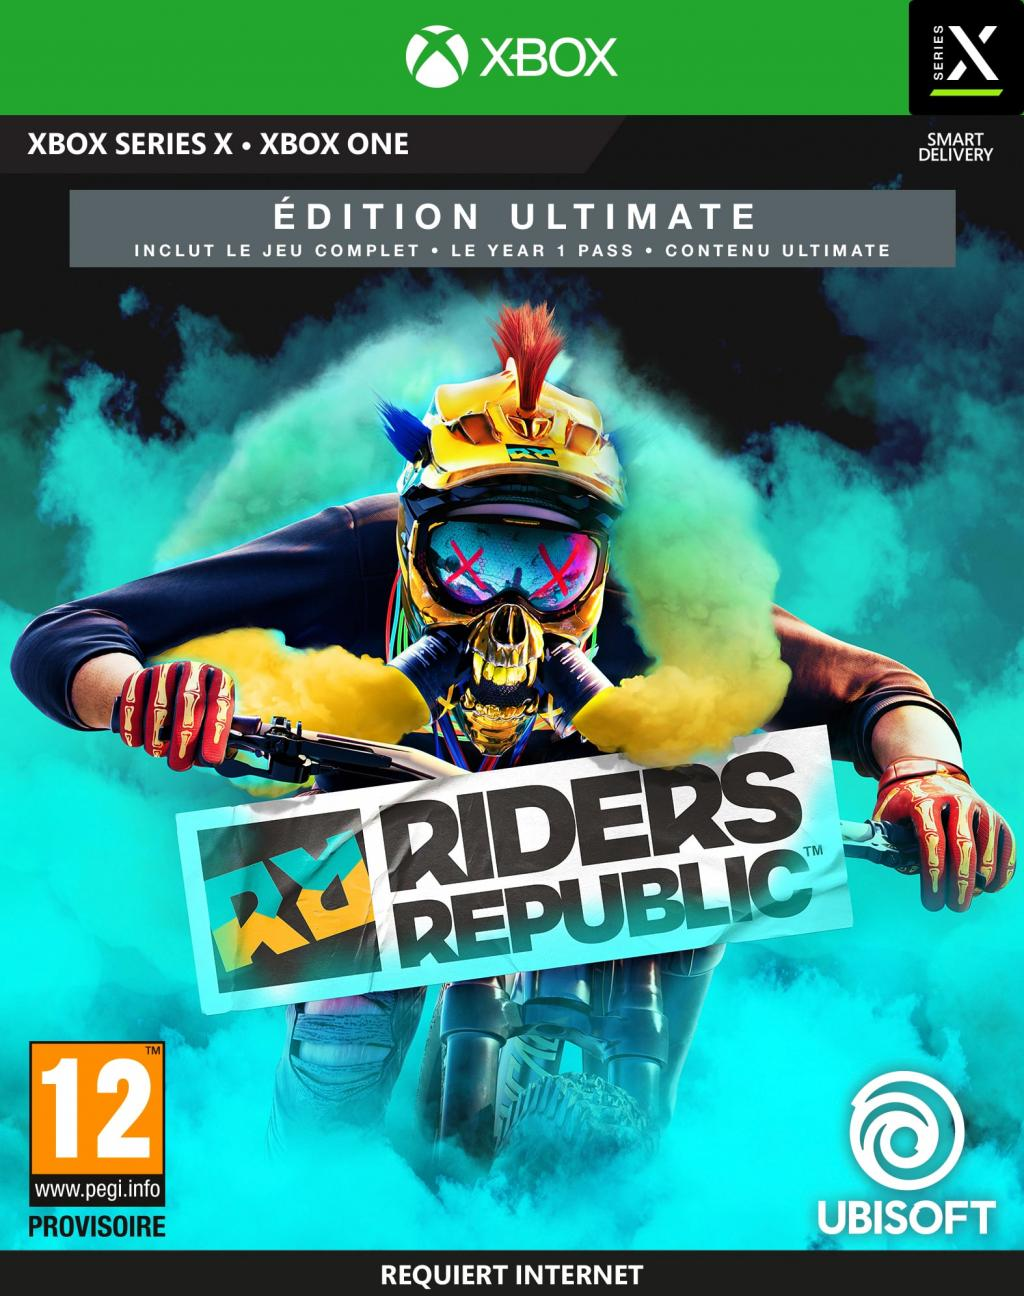 Riders Republic ULTIMATE - XB ONE / SERIES X_1